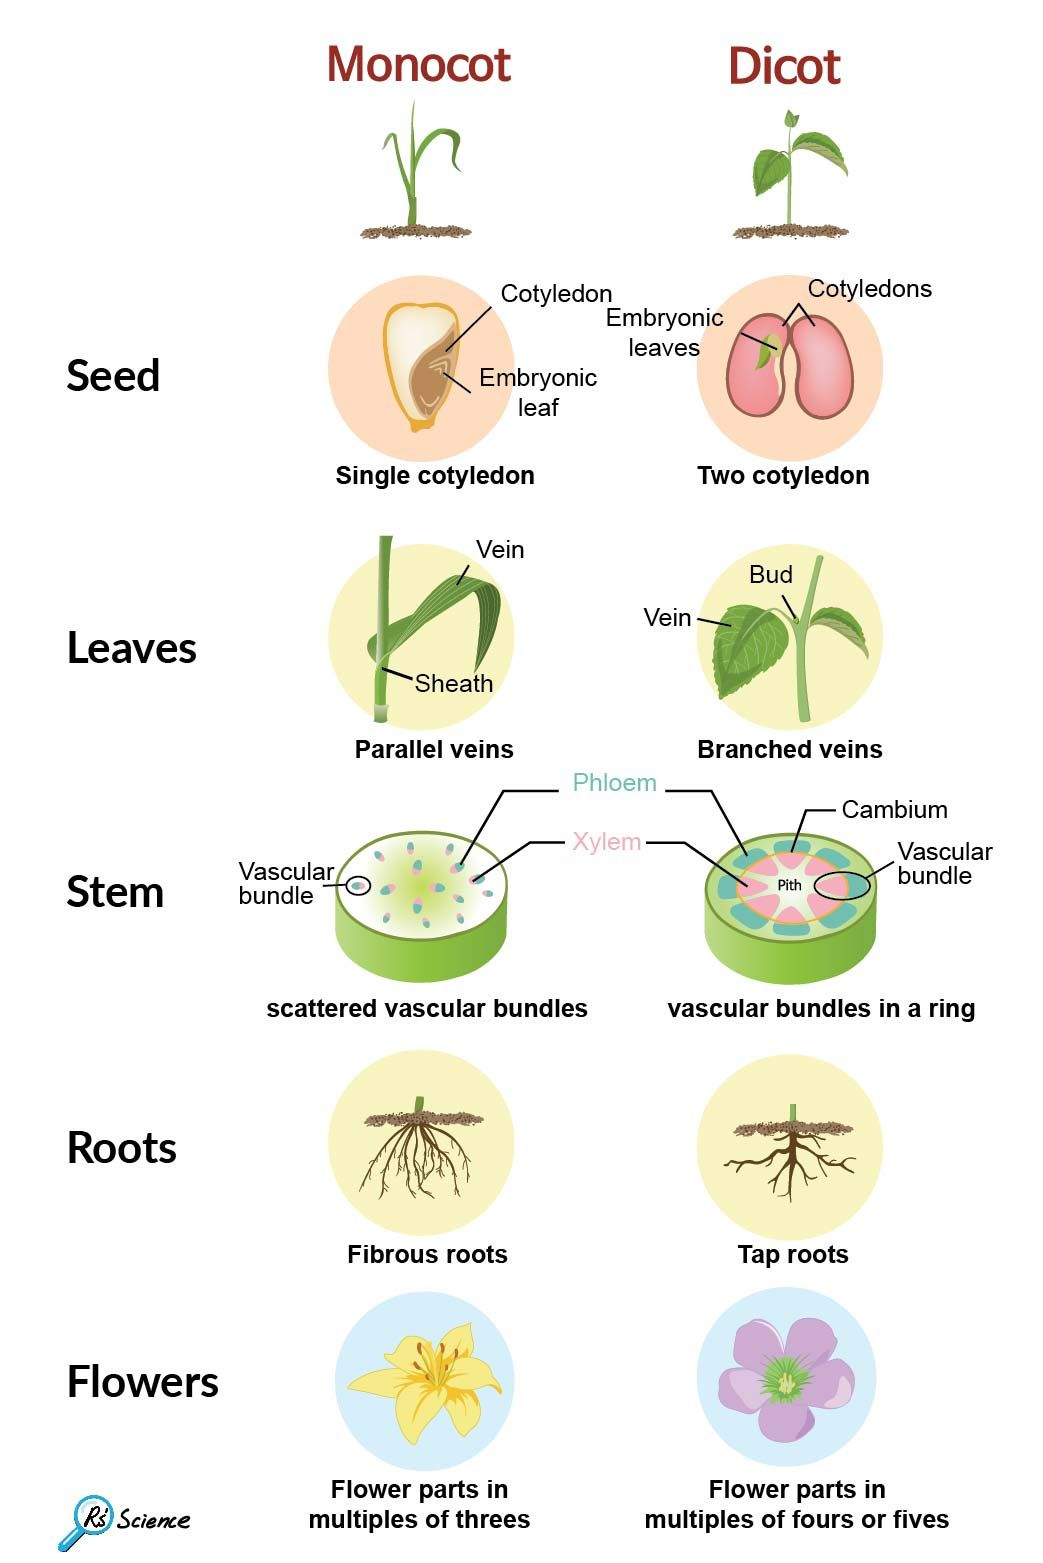 Monocot Vs Dicot In